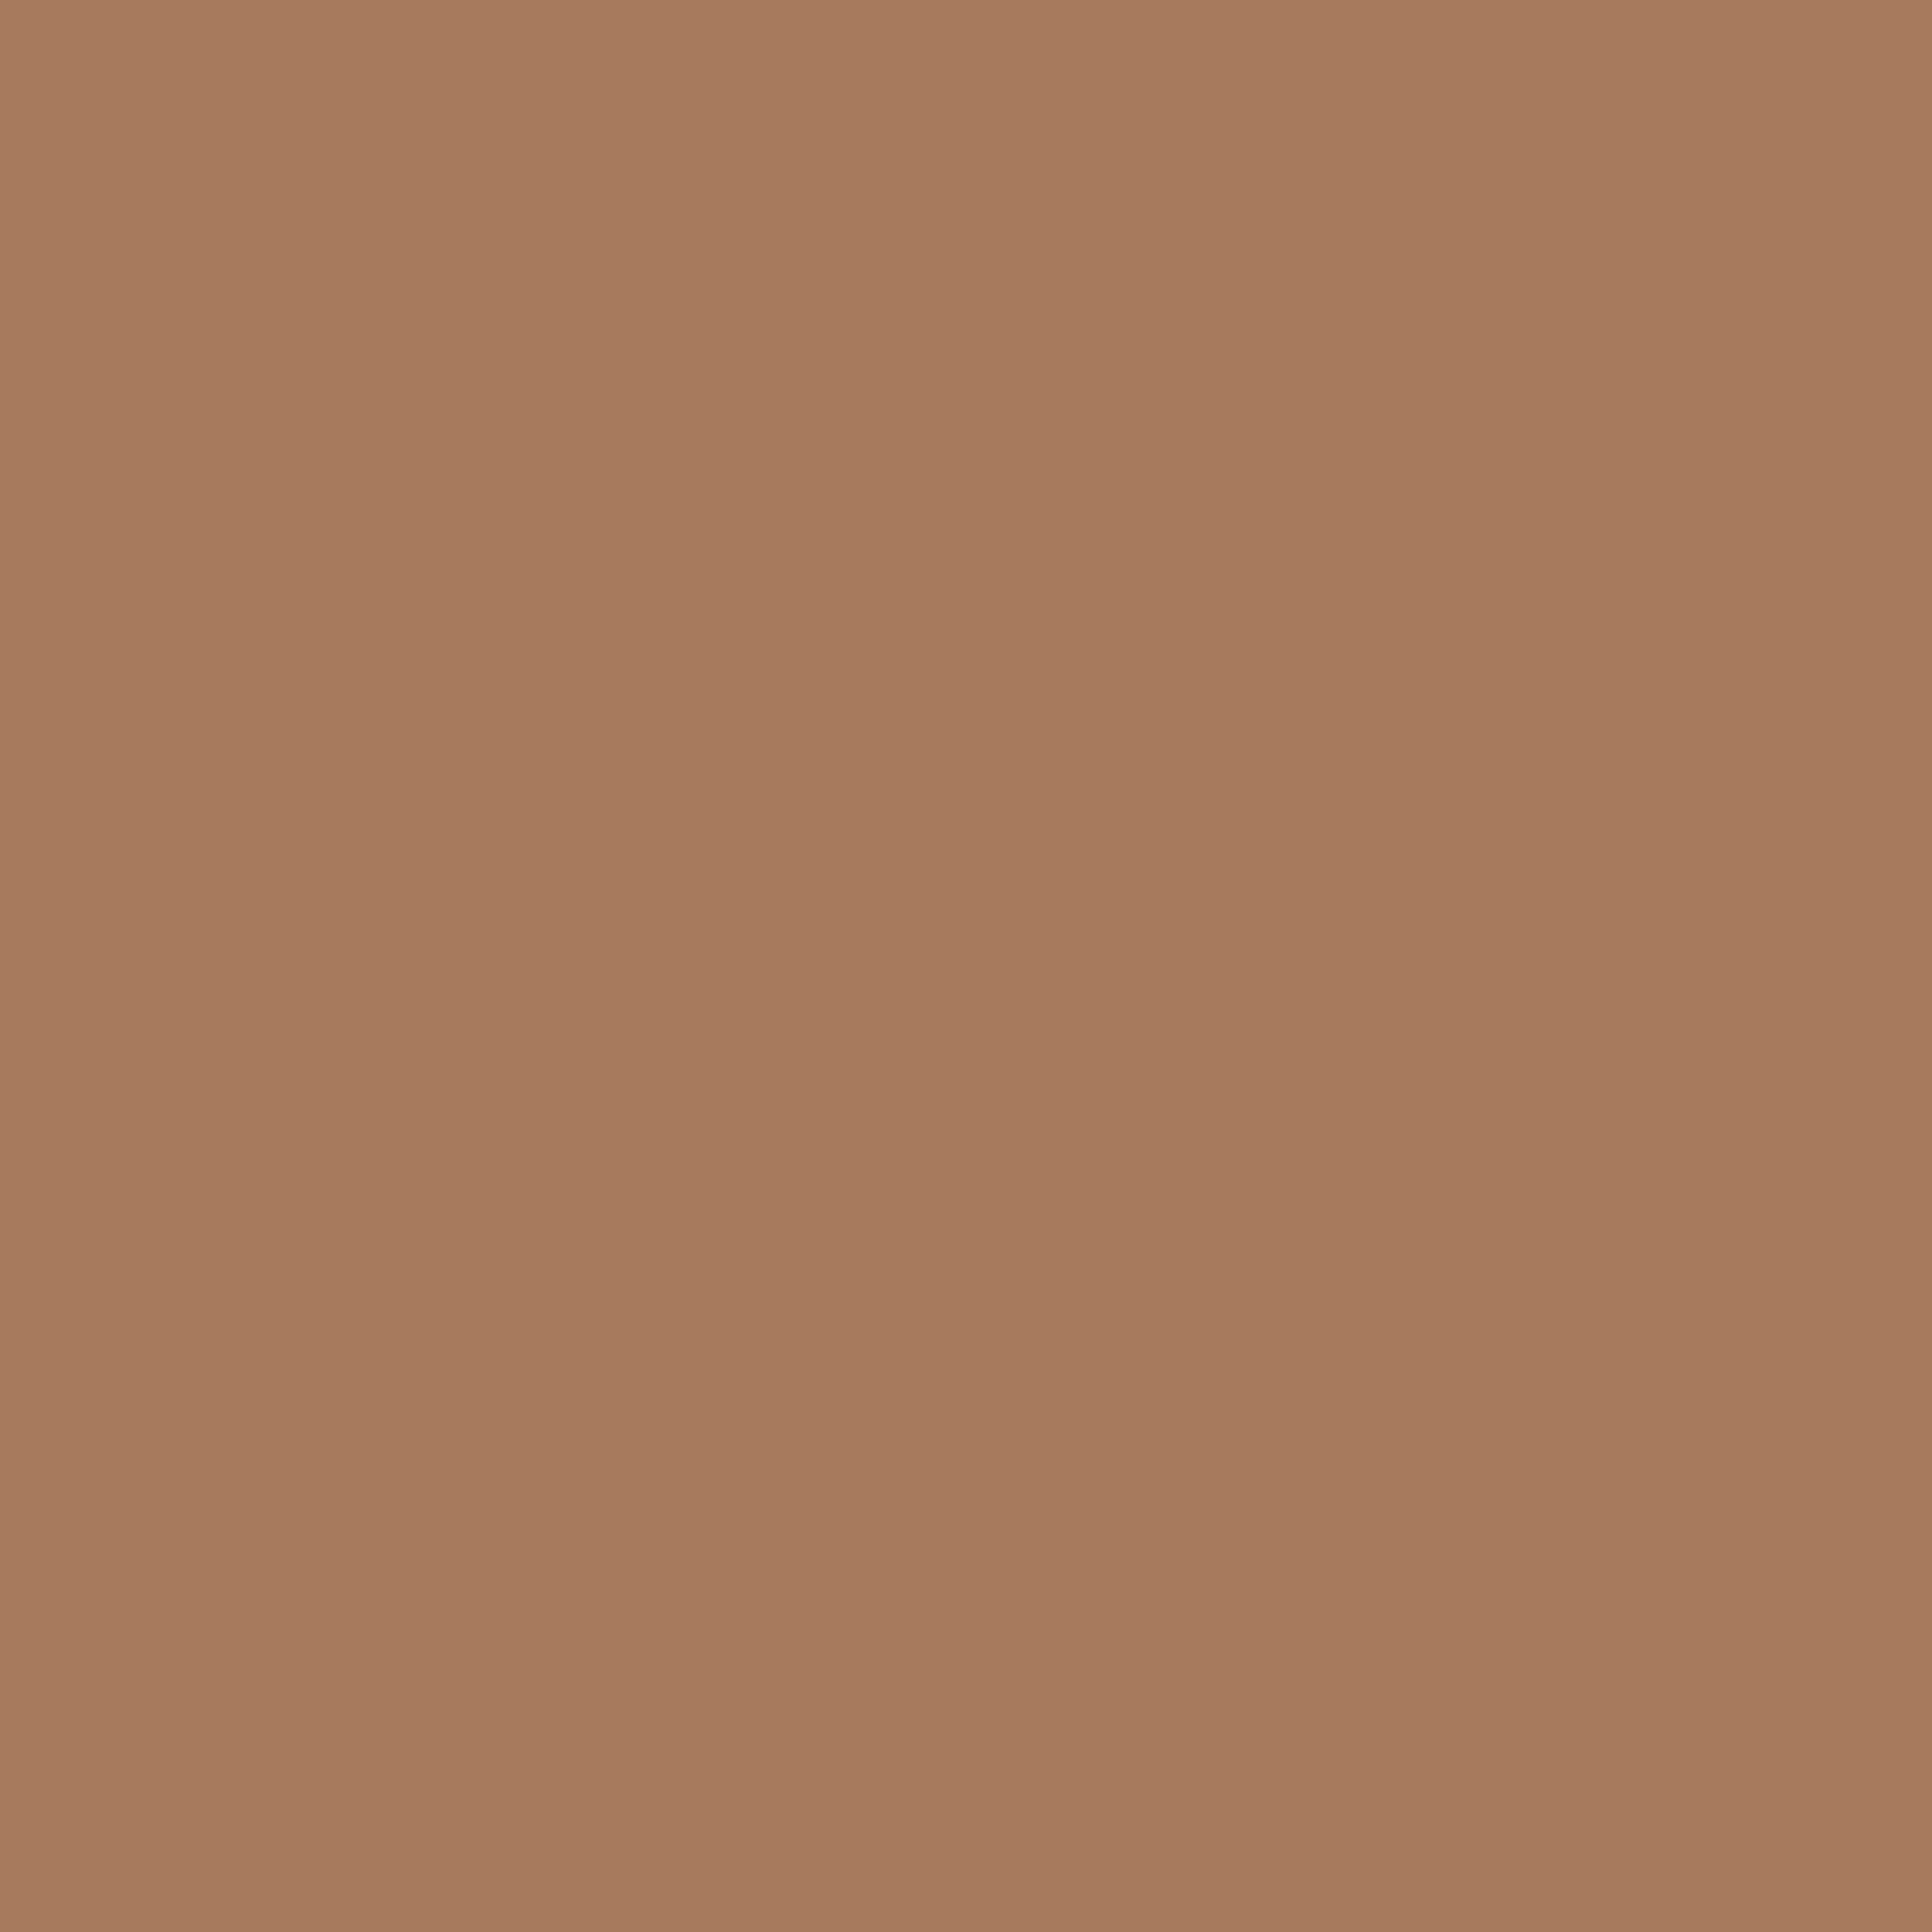 2048x2048 Tuscan Tan Solid Color Background